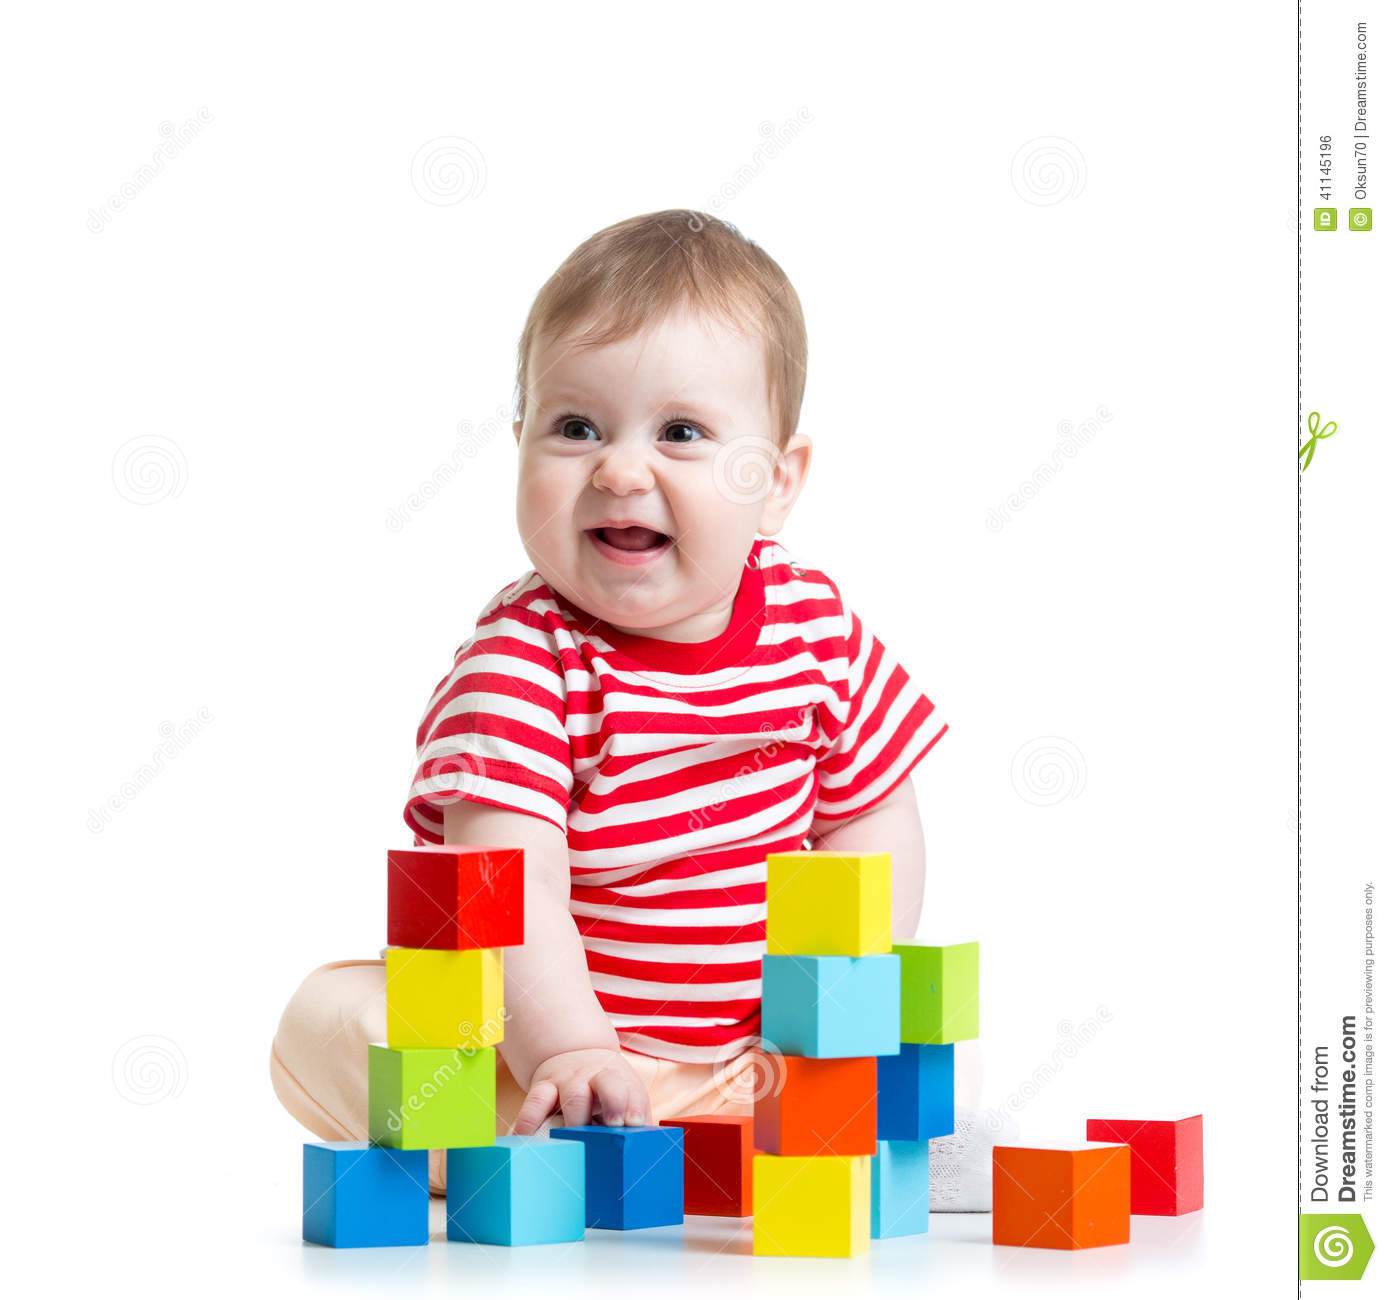 Toddler Toys Photography : Baby toddler playing building block toys stock photo